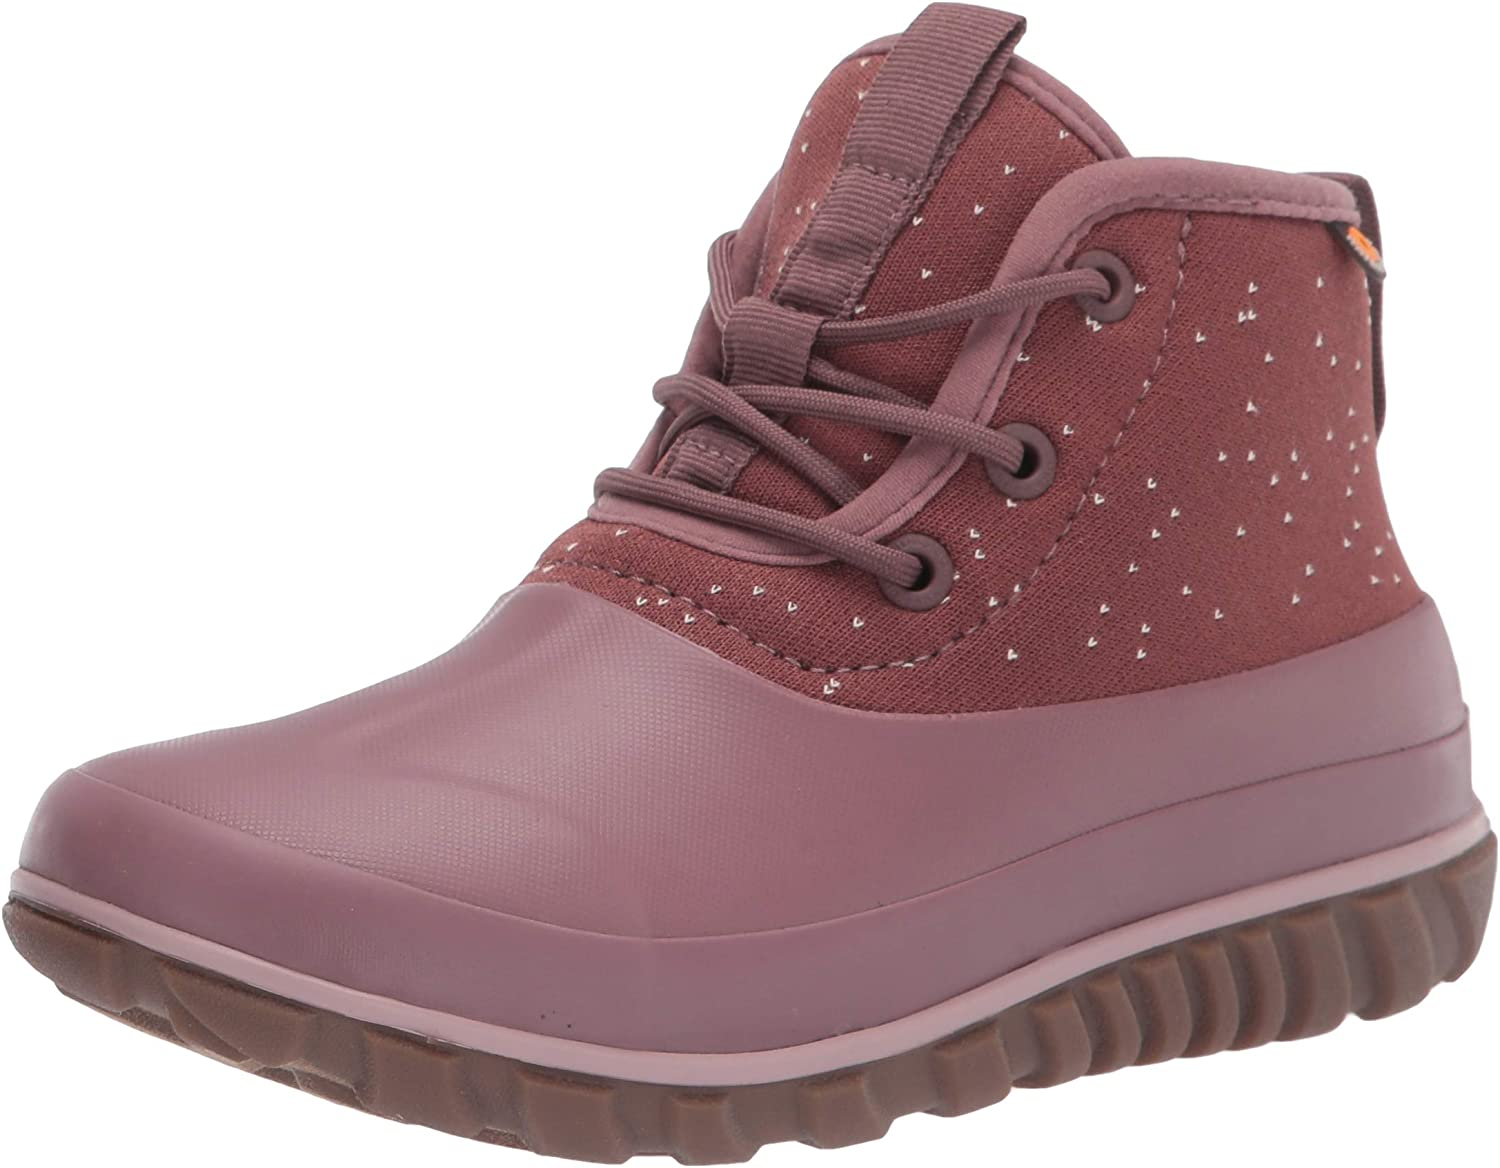 BOGS Women's Classic Casual Lace Speckle Snow Boot